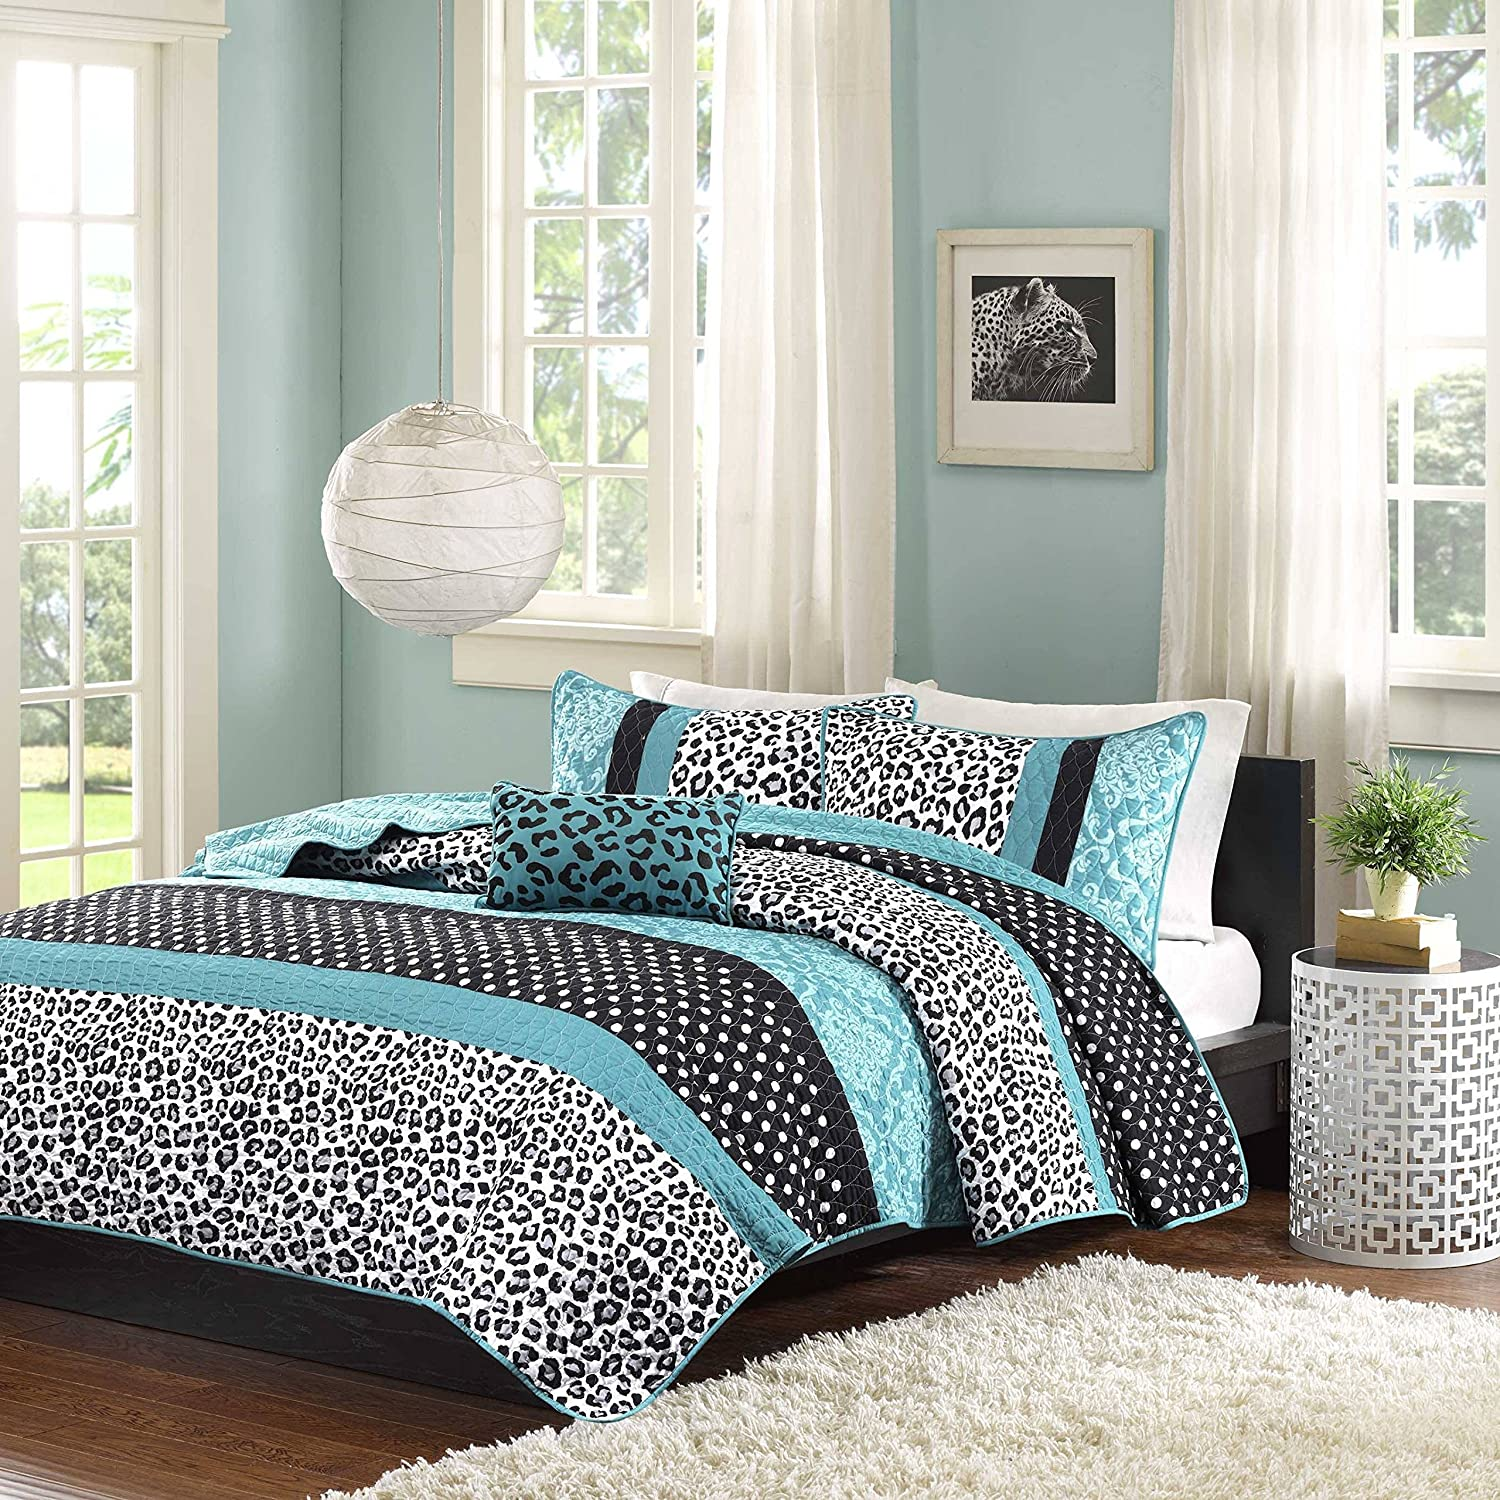 4 Piece Kids Teal Black Animal Print Theme Full Queen Coverlet Set, Jaguar Cheetah Pattern Bedding Polka Dot Damask White Leopard Print Jungle Wild Life Motif, Polyester